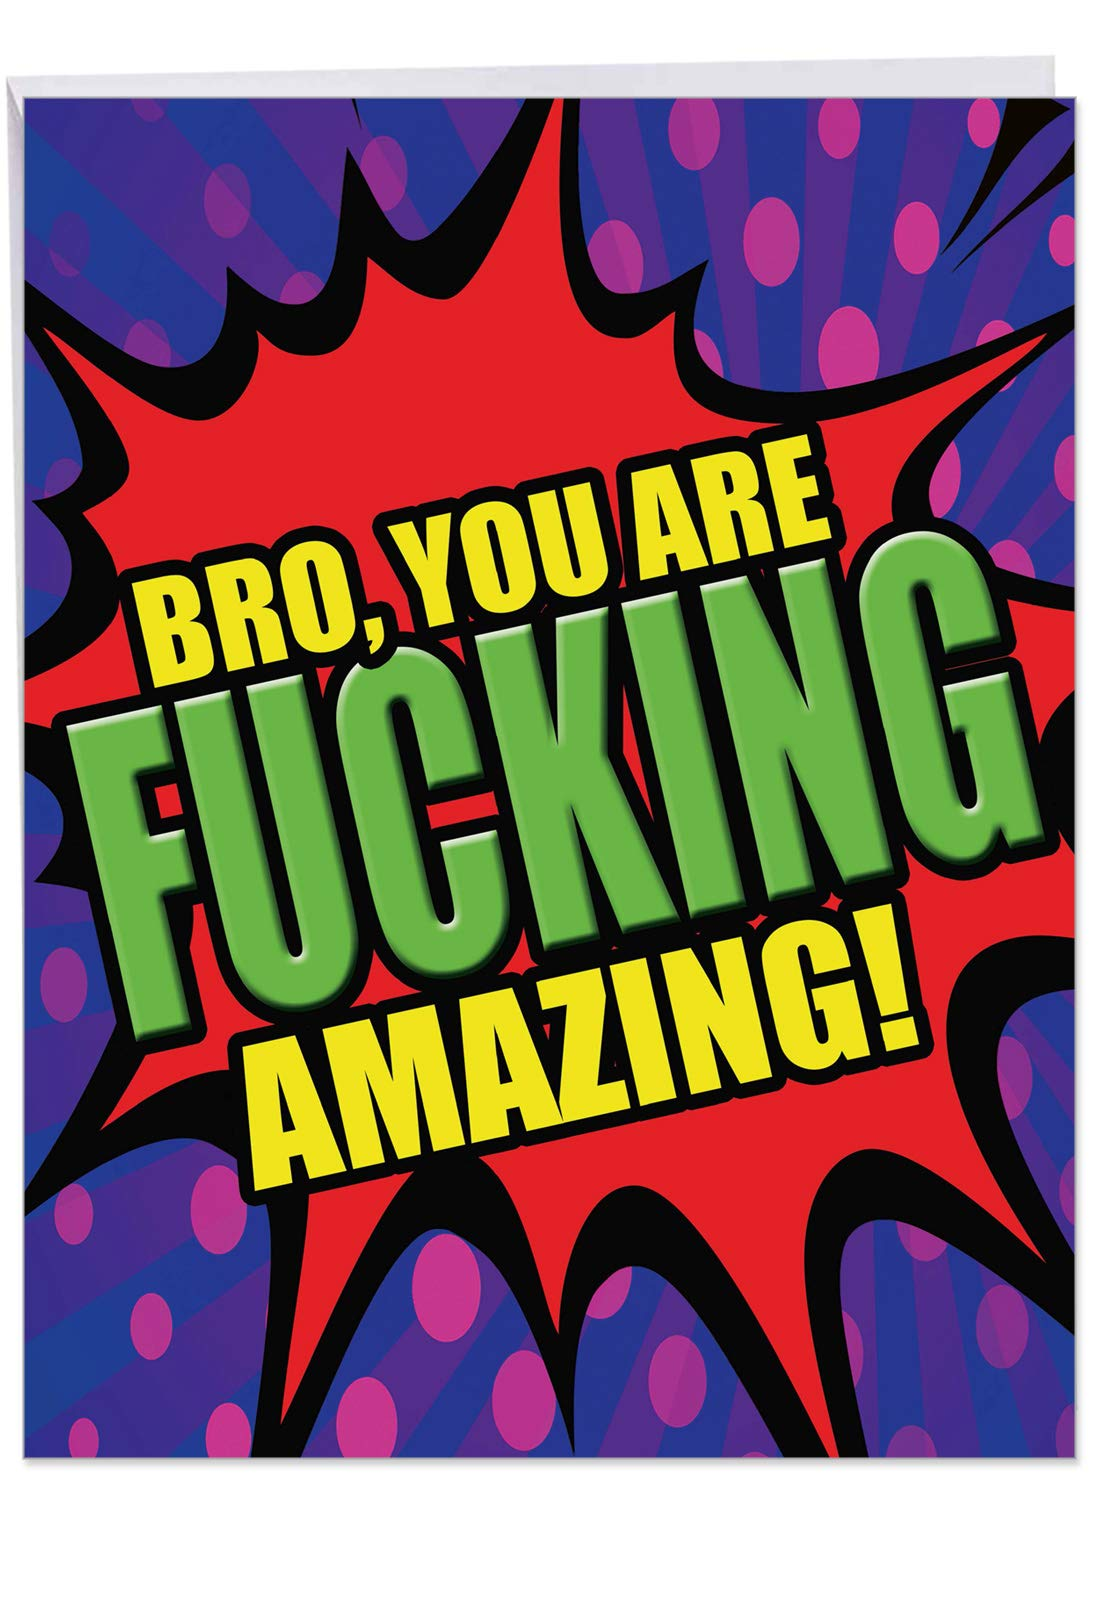 Hilarious F-King Amazing Brother Thank You Card with Envelope (Large 8.5 x 11 Inch) - Adult Humor Occasion Notecard for Brother, Sibling - Personalized Appreciation Stationery Greeting J4965CBXG